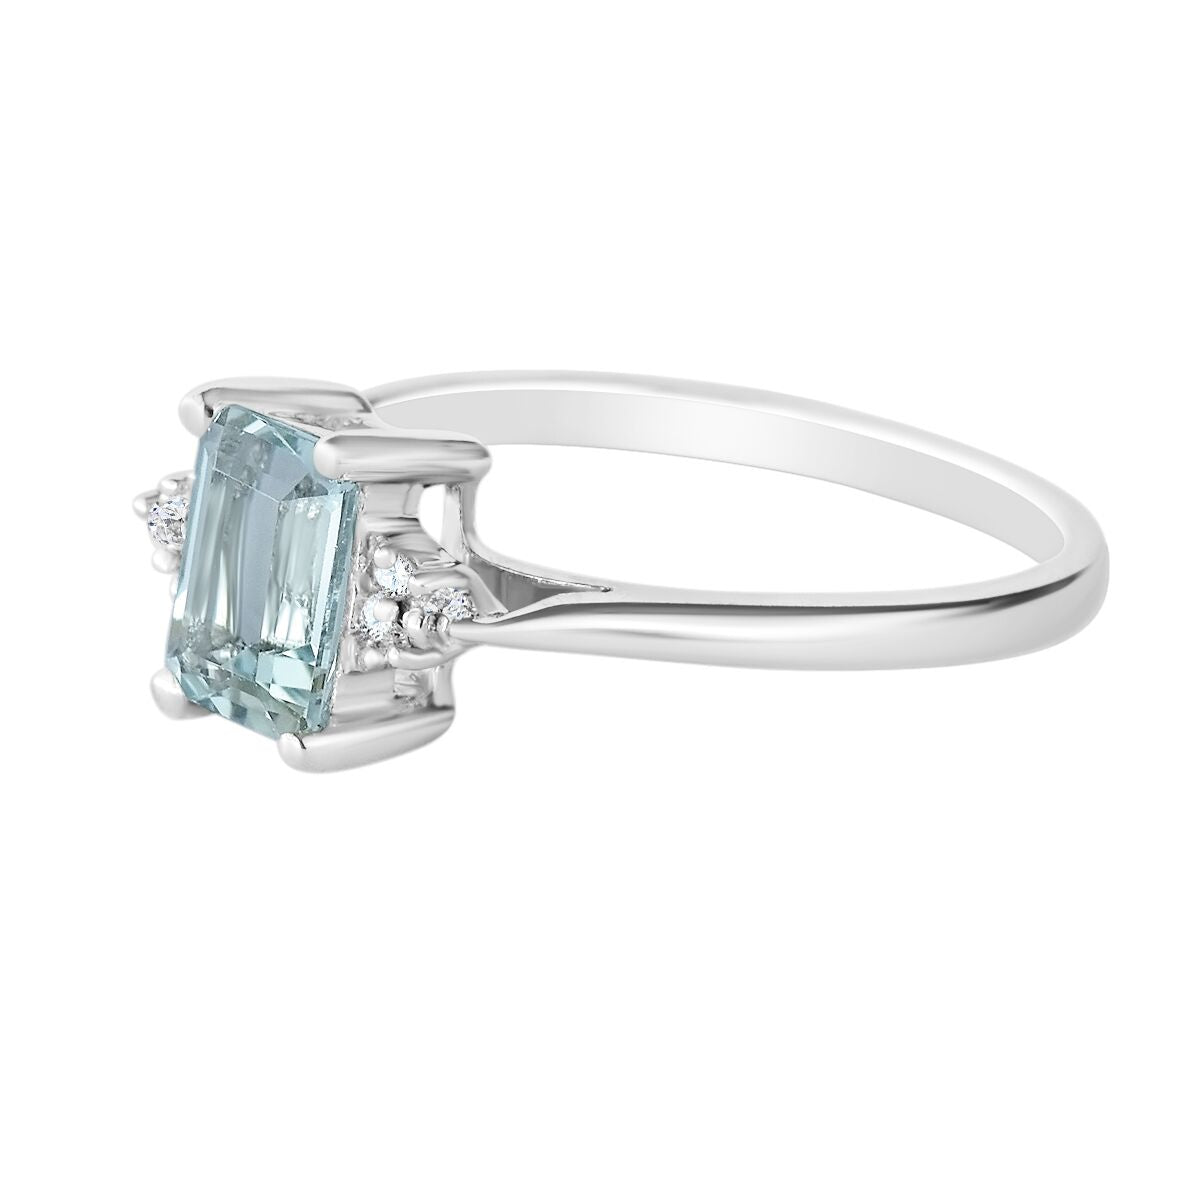 9K SOLID WHITE GOLD 0.90CT NATURAL EMERALD CUT AQUAMARINE + 6 DIAMOND RING.